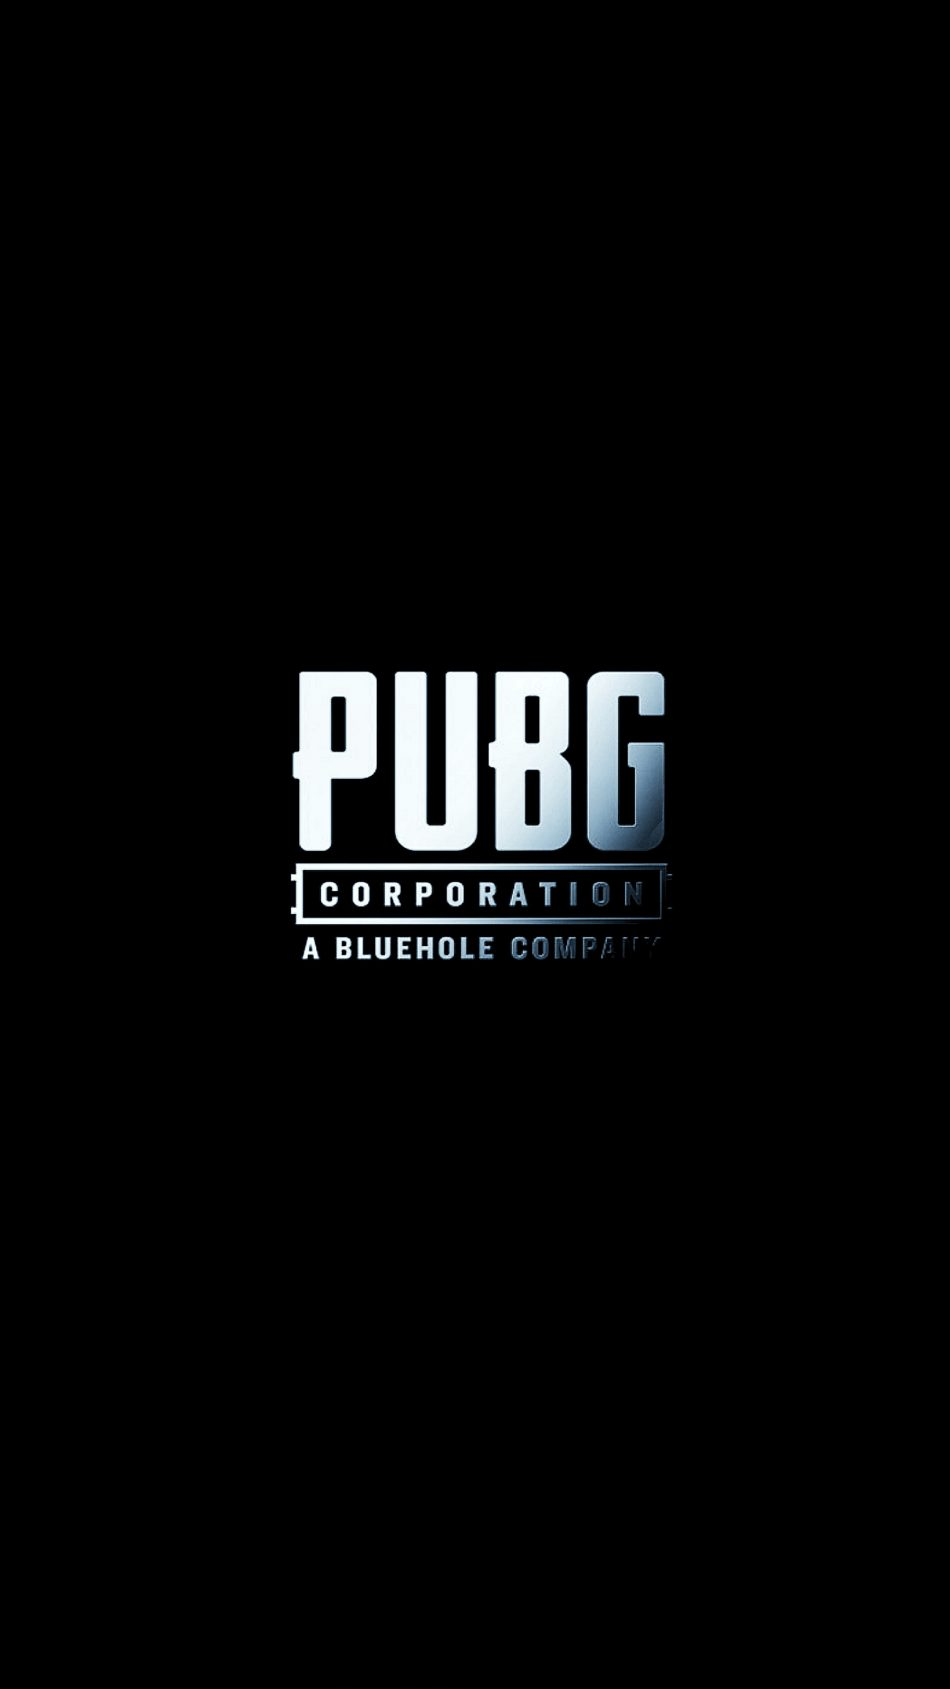 Download 900 Koleksi Pubg Wallpaper Black Background Terbaik